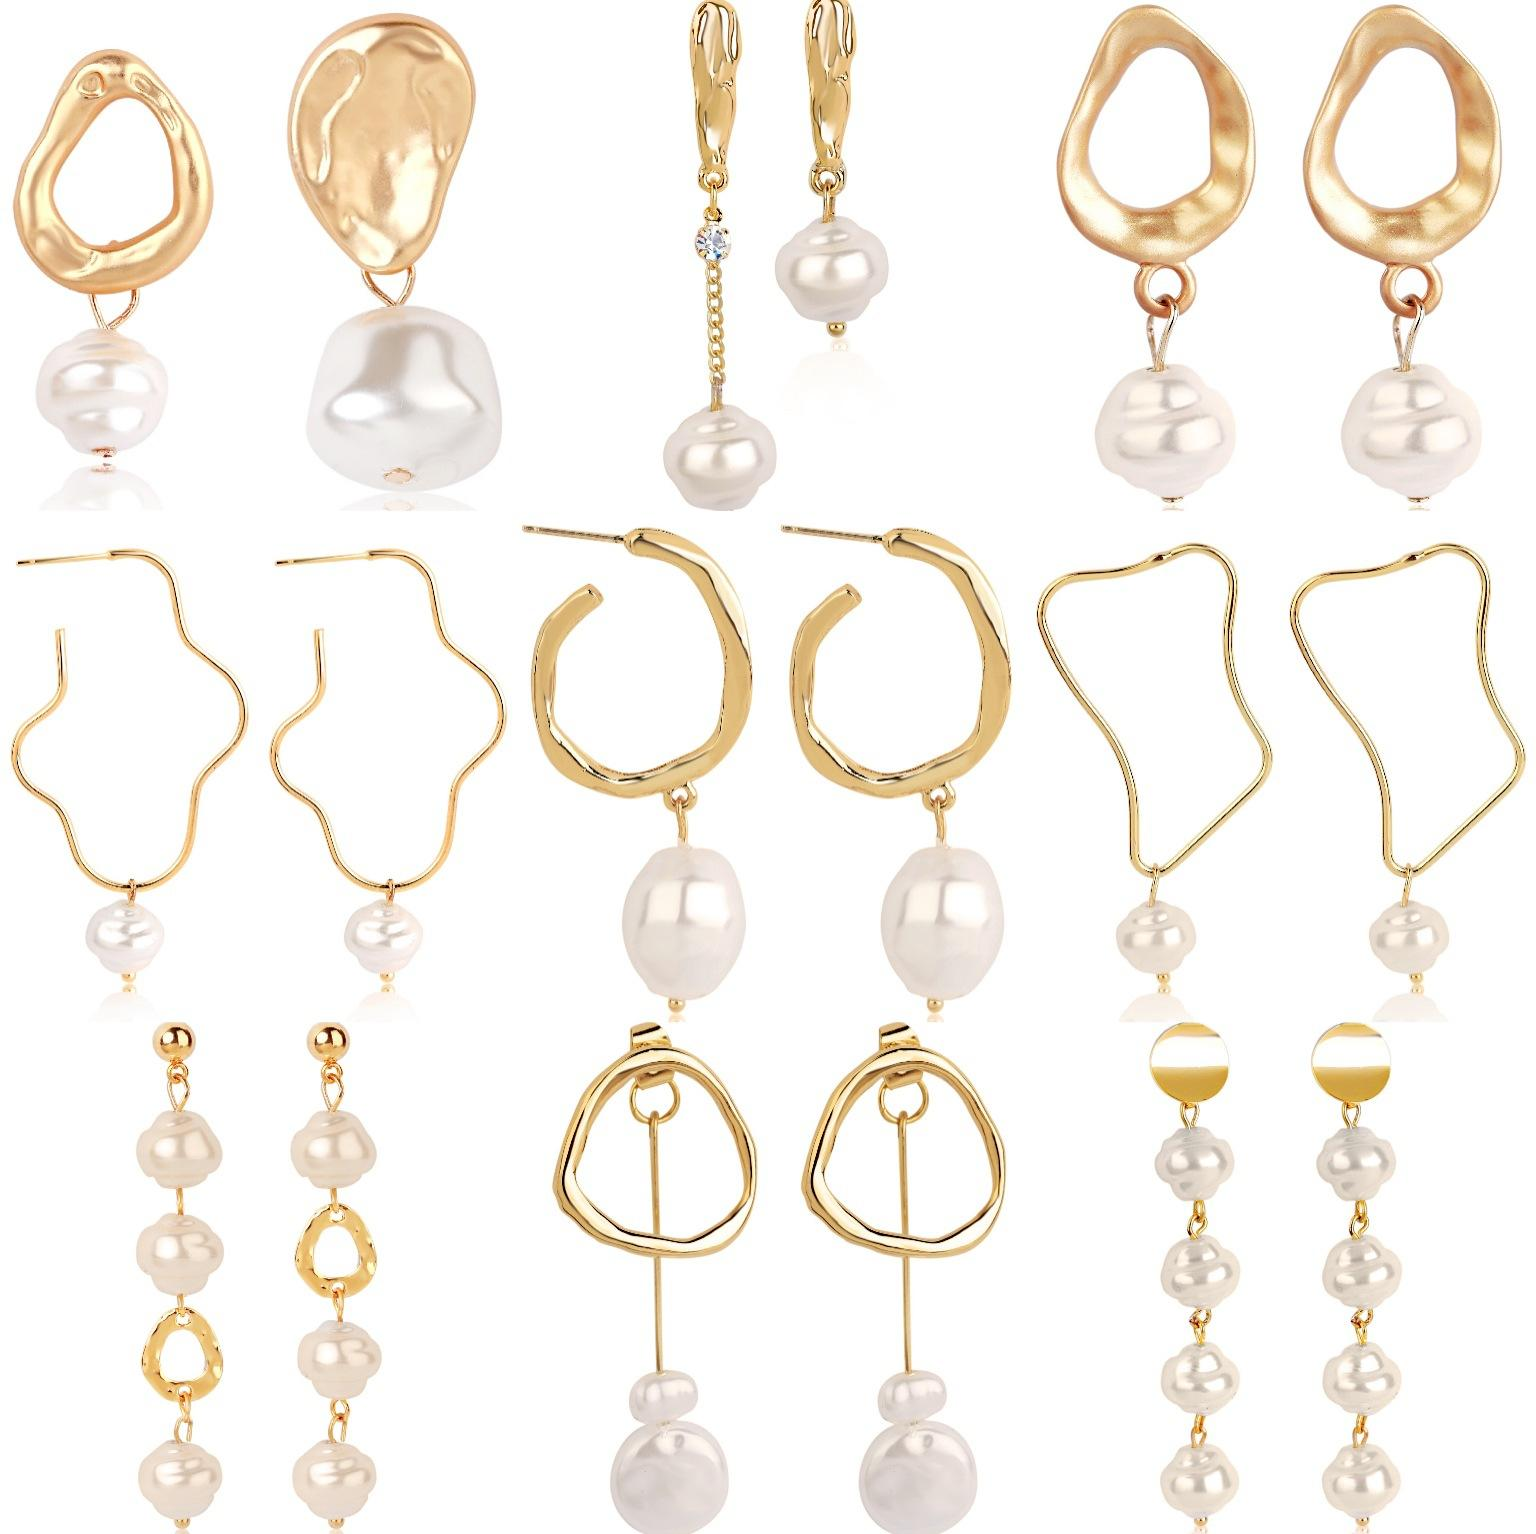 2020 new fashion Earring imitated natural pearl earrings female earrings long baroque zircon pearl earrings top sell lady jewerly highqualit